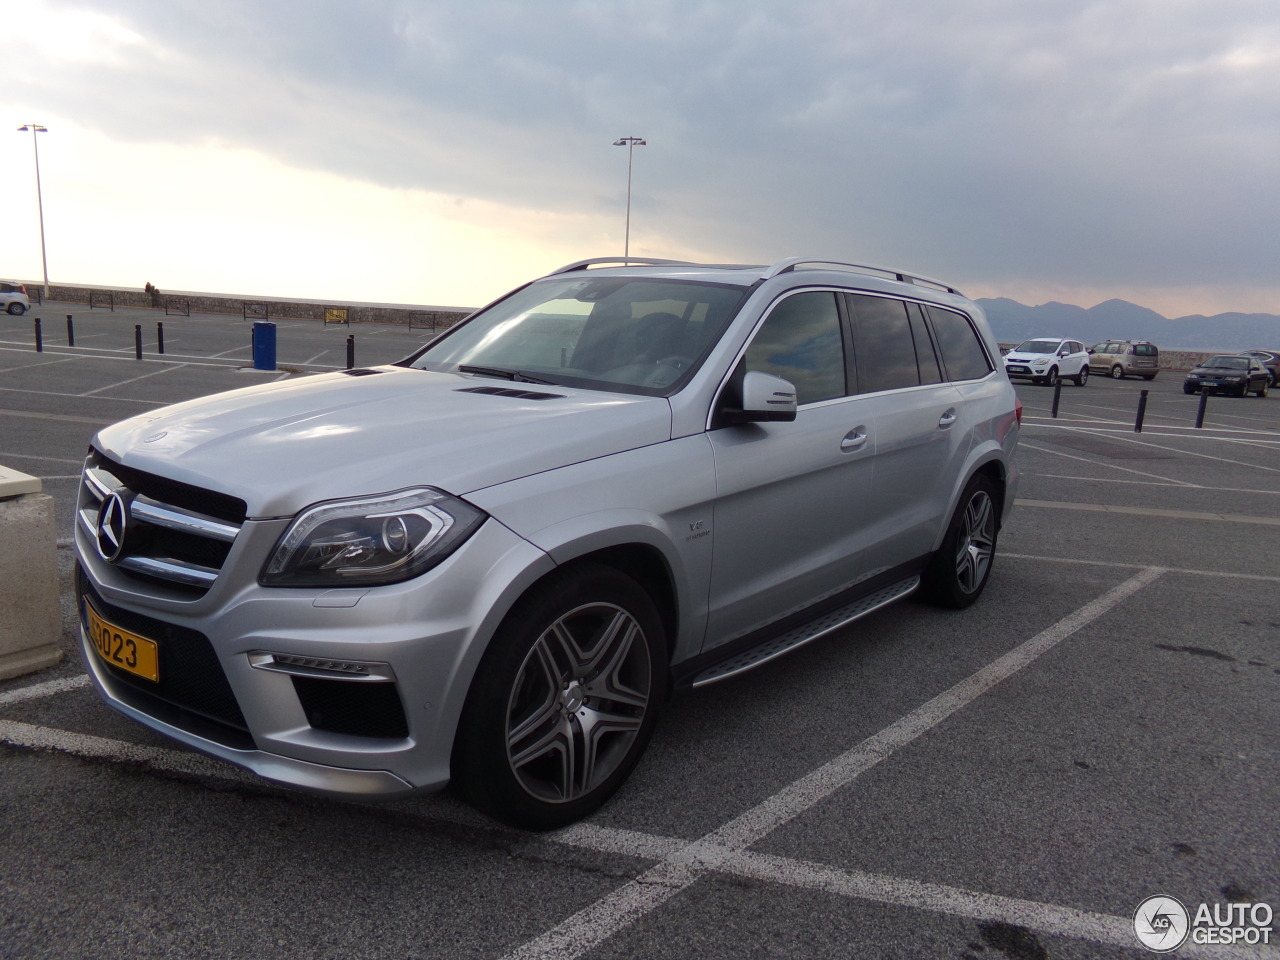 Mercedes benz gl 63 amg x166 29 january 2016 autogespot for Mercedes benz gls 63 amg